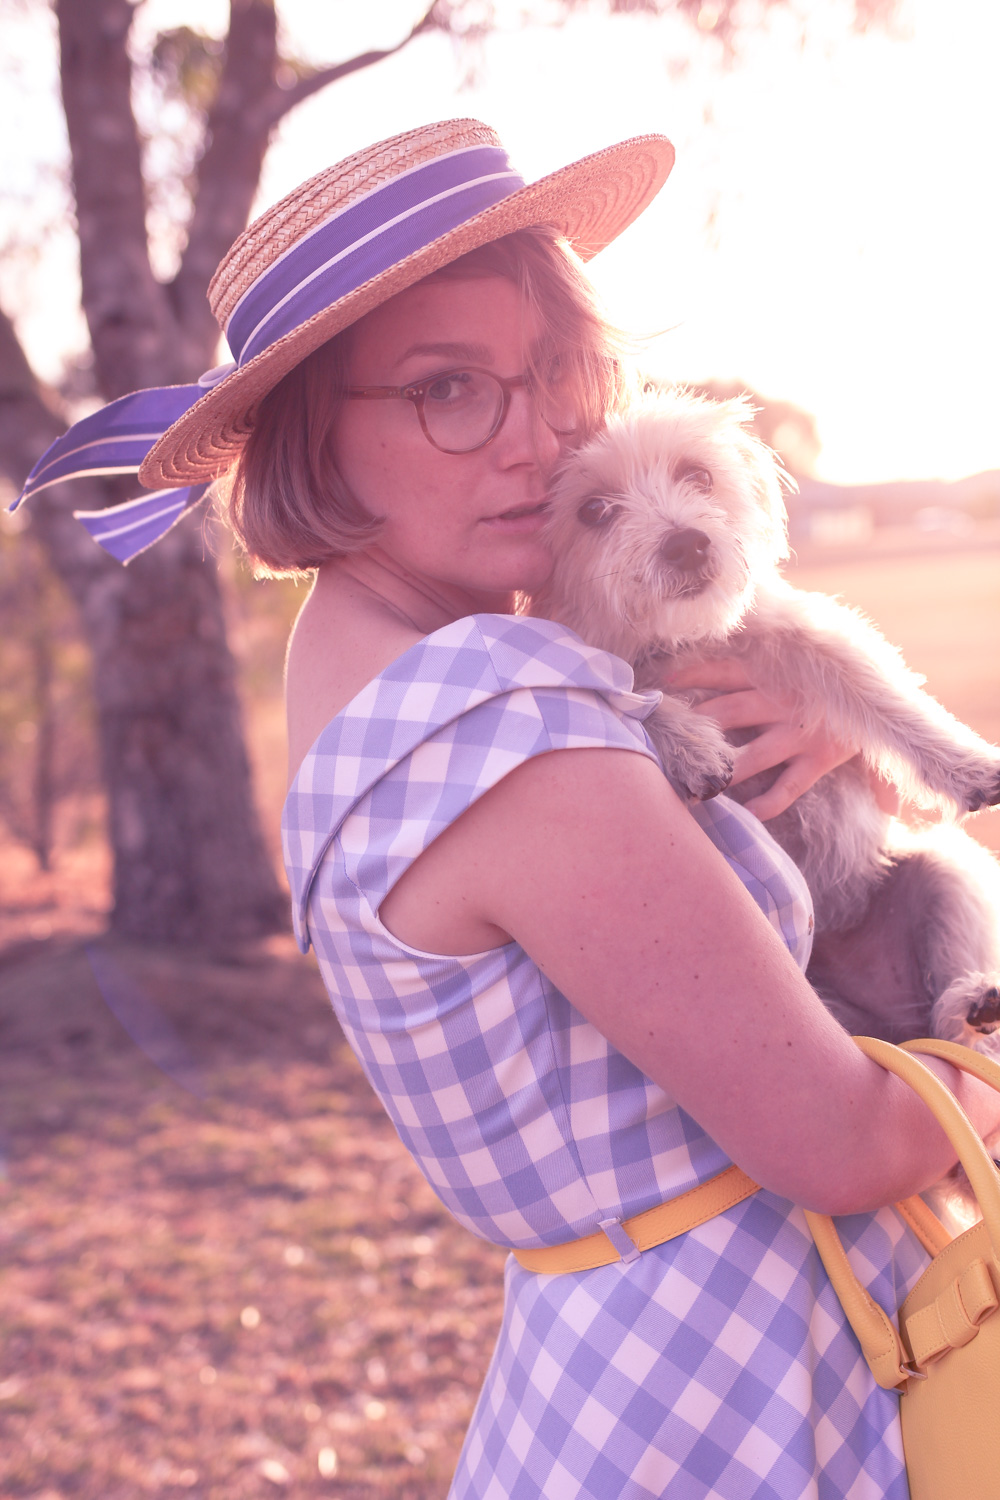 @findingfemme wears blue gingham Review Australia dress with vintage Laura Ashley straw boater hat.